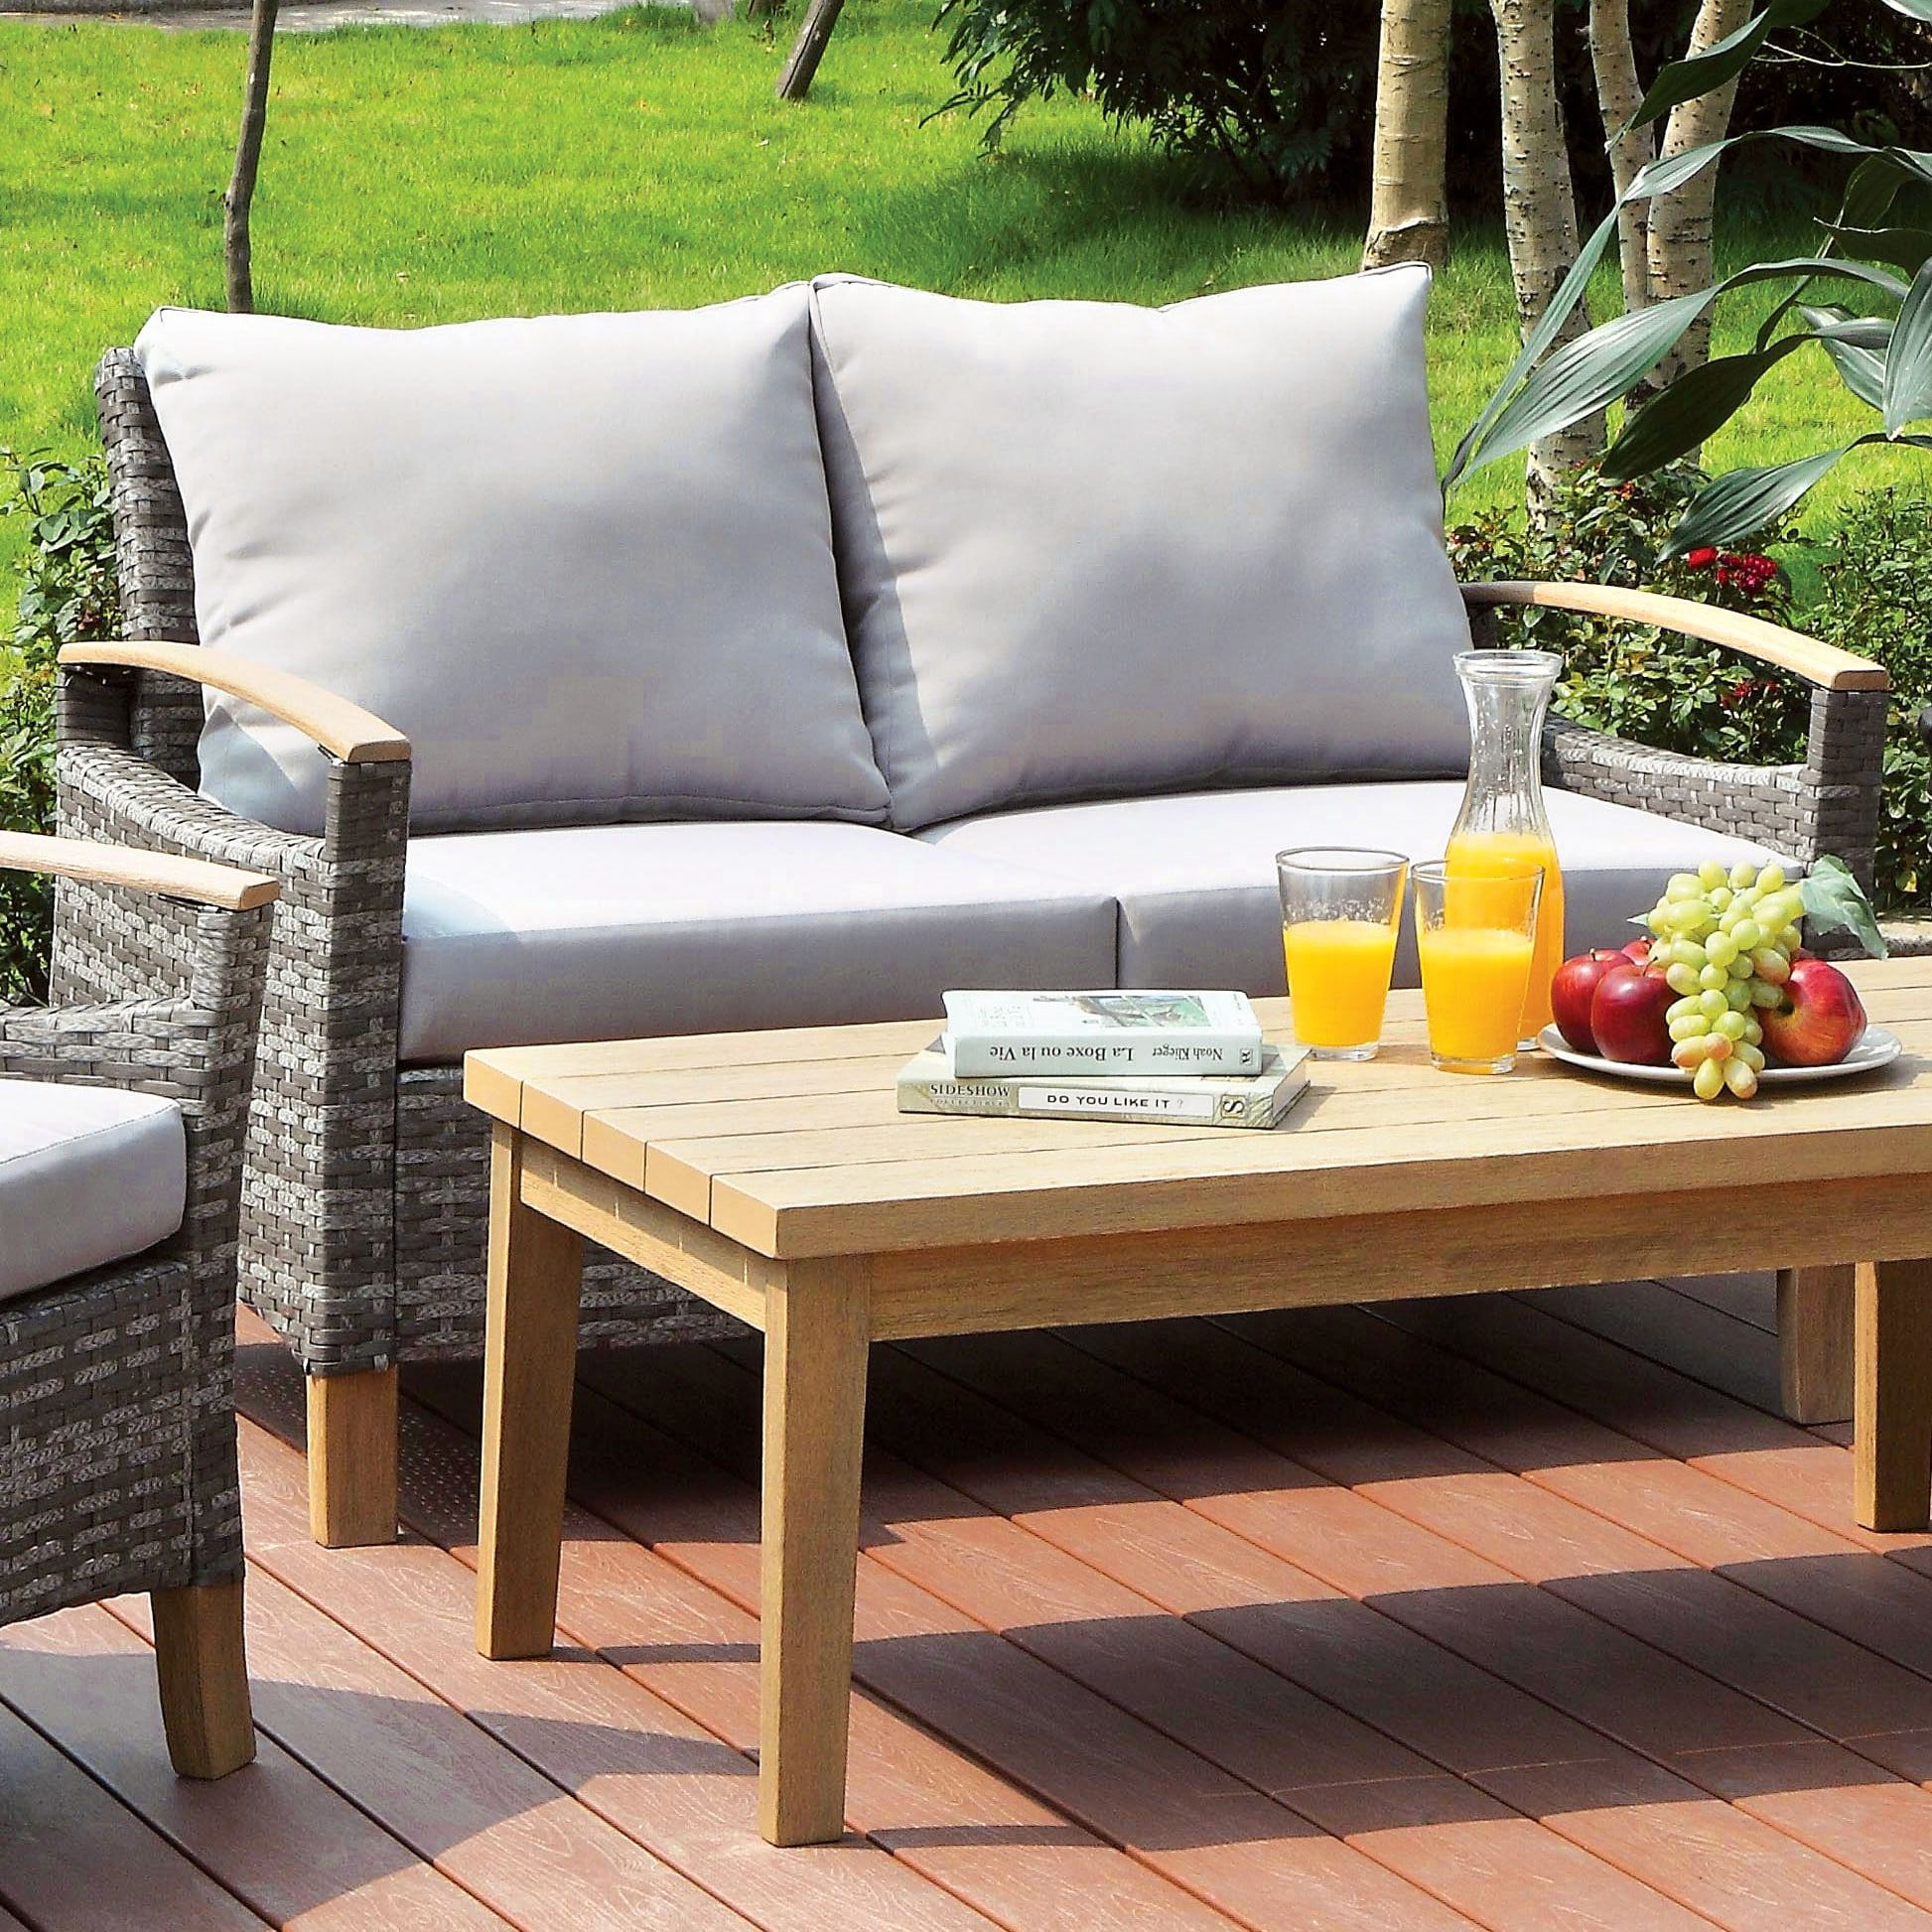 Furniture of America Malone Contemporary Outdoor Aluminum Wicker